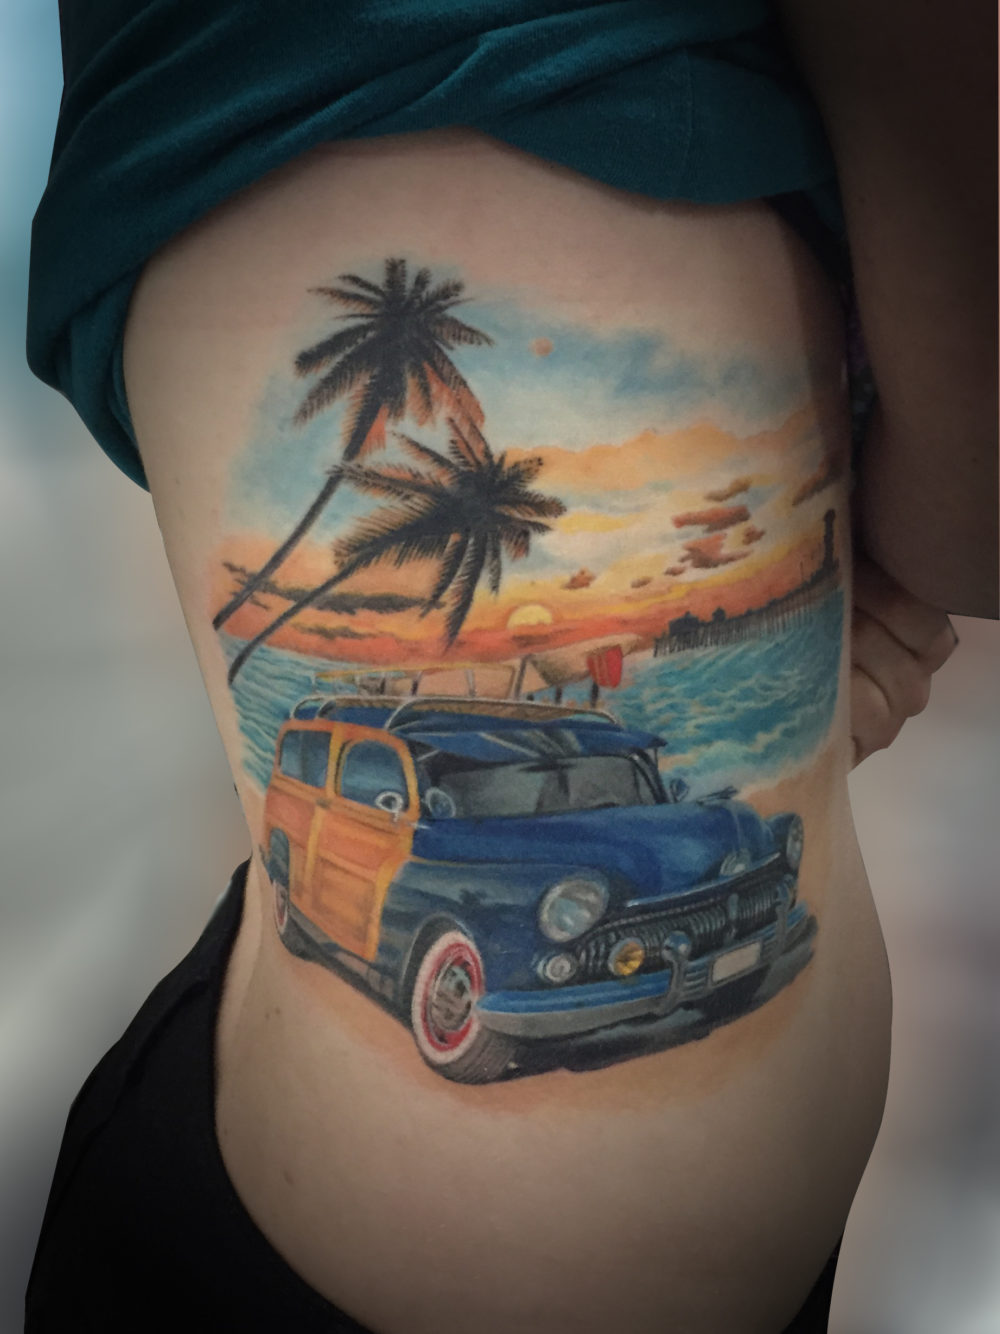 Q Tattoo in Huntington Beach - Karel Beck - olide, beach, woody